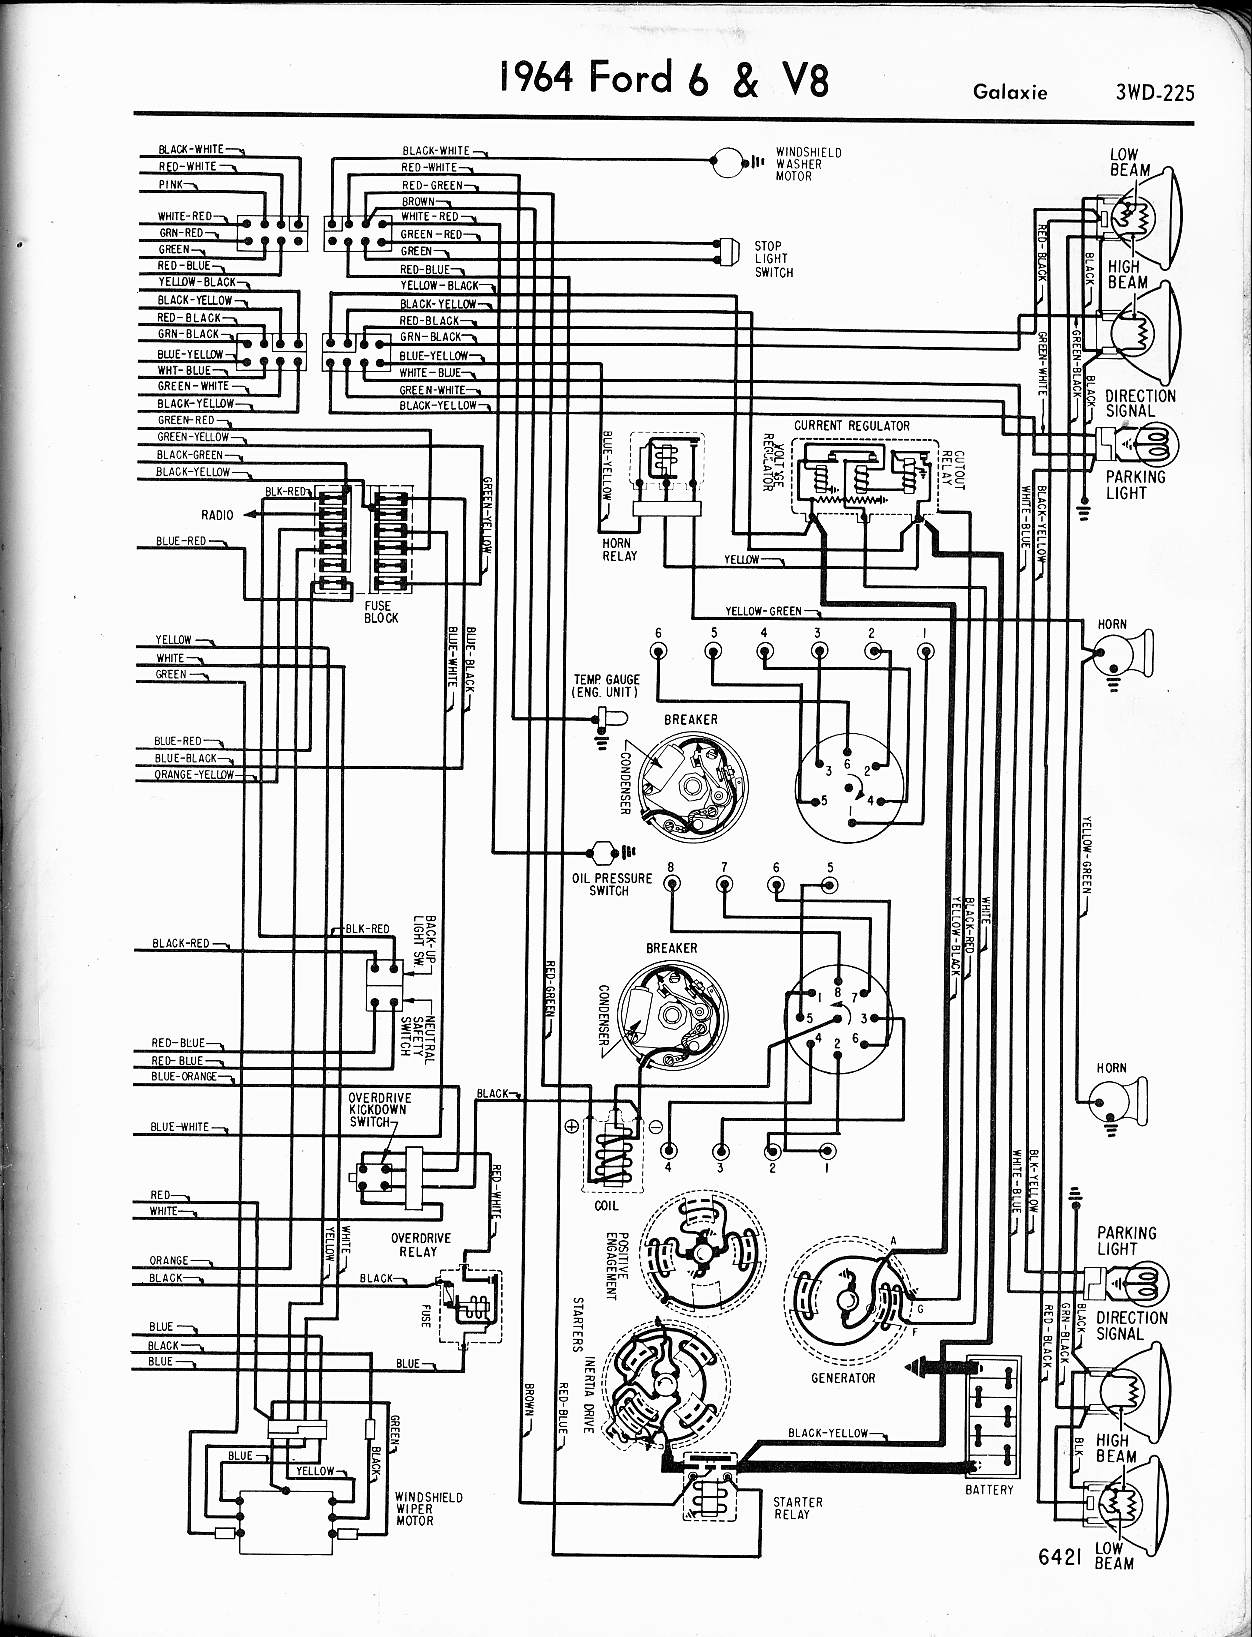 Ford Econoline Wiring Diagram